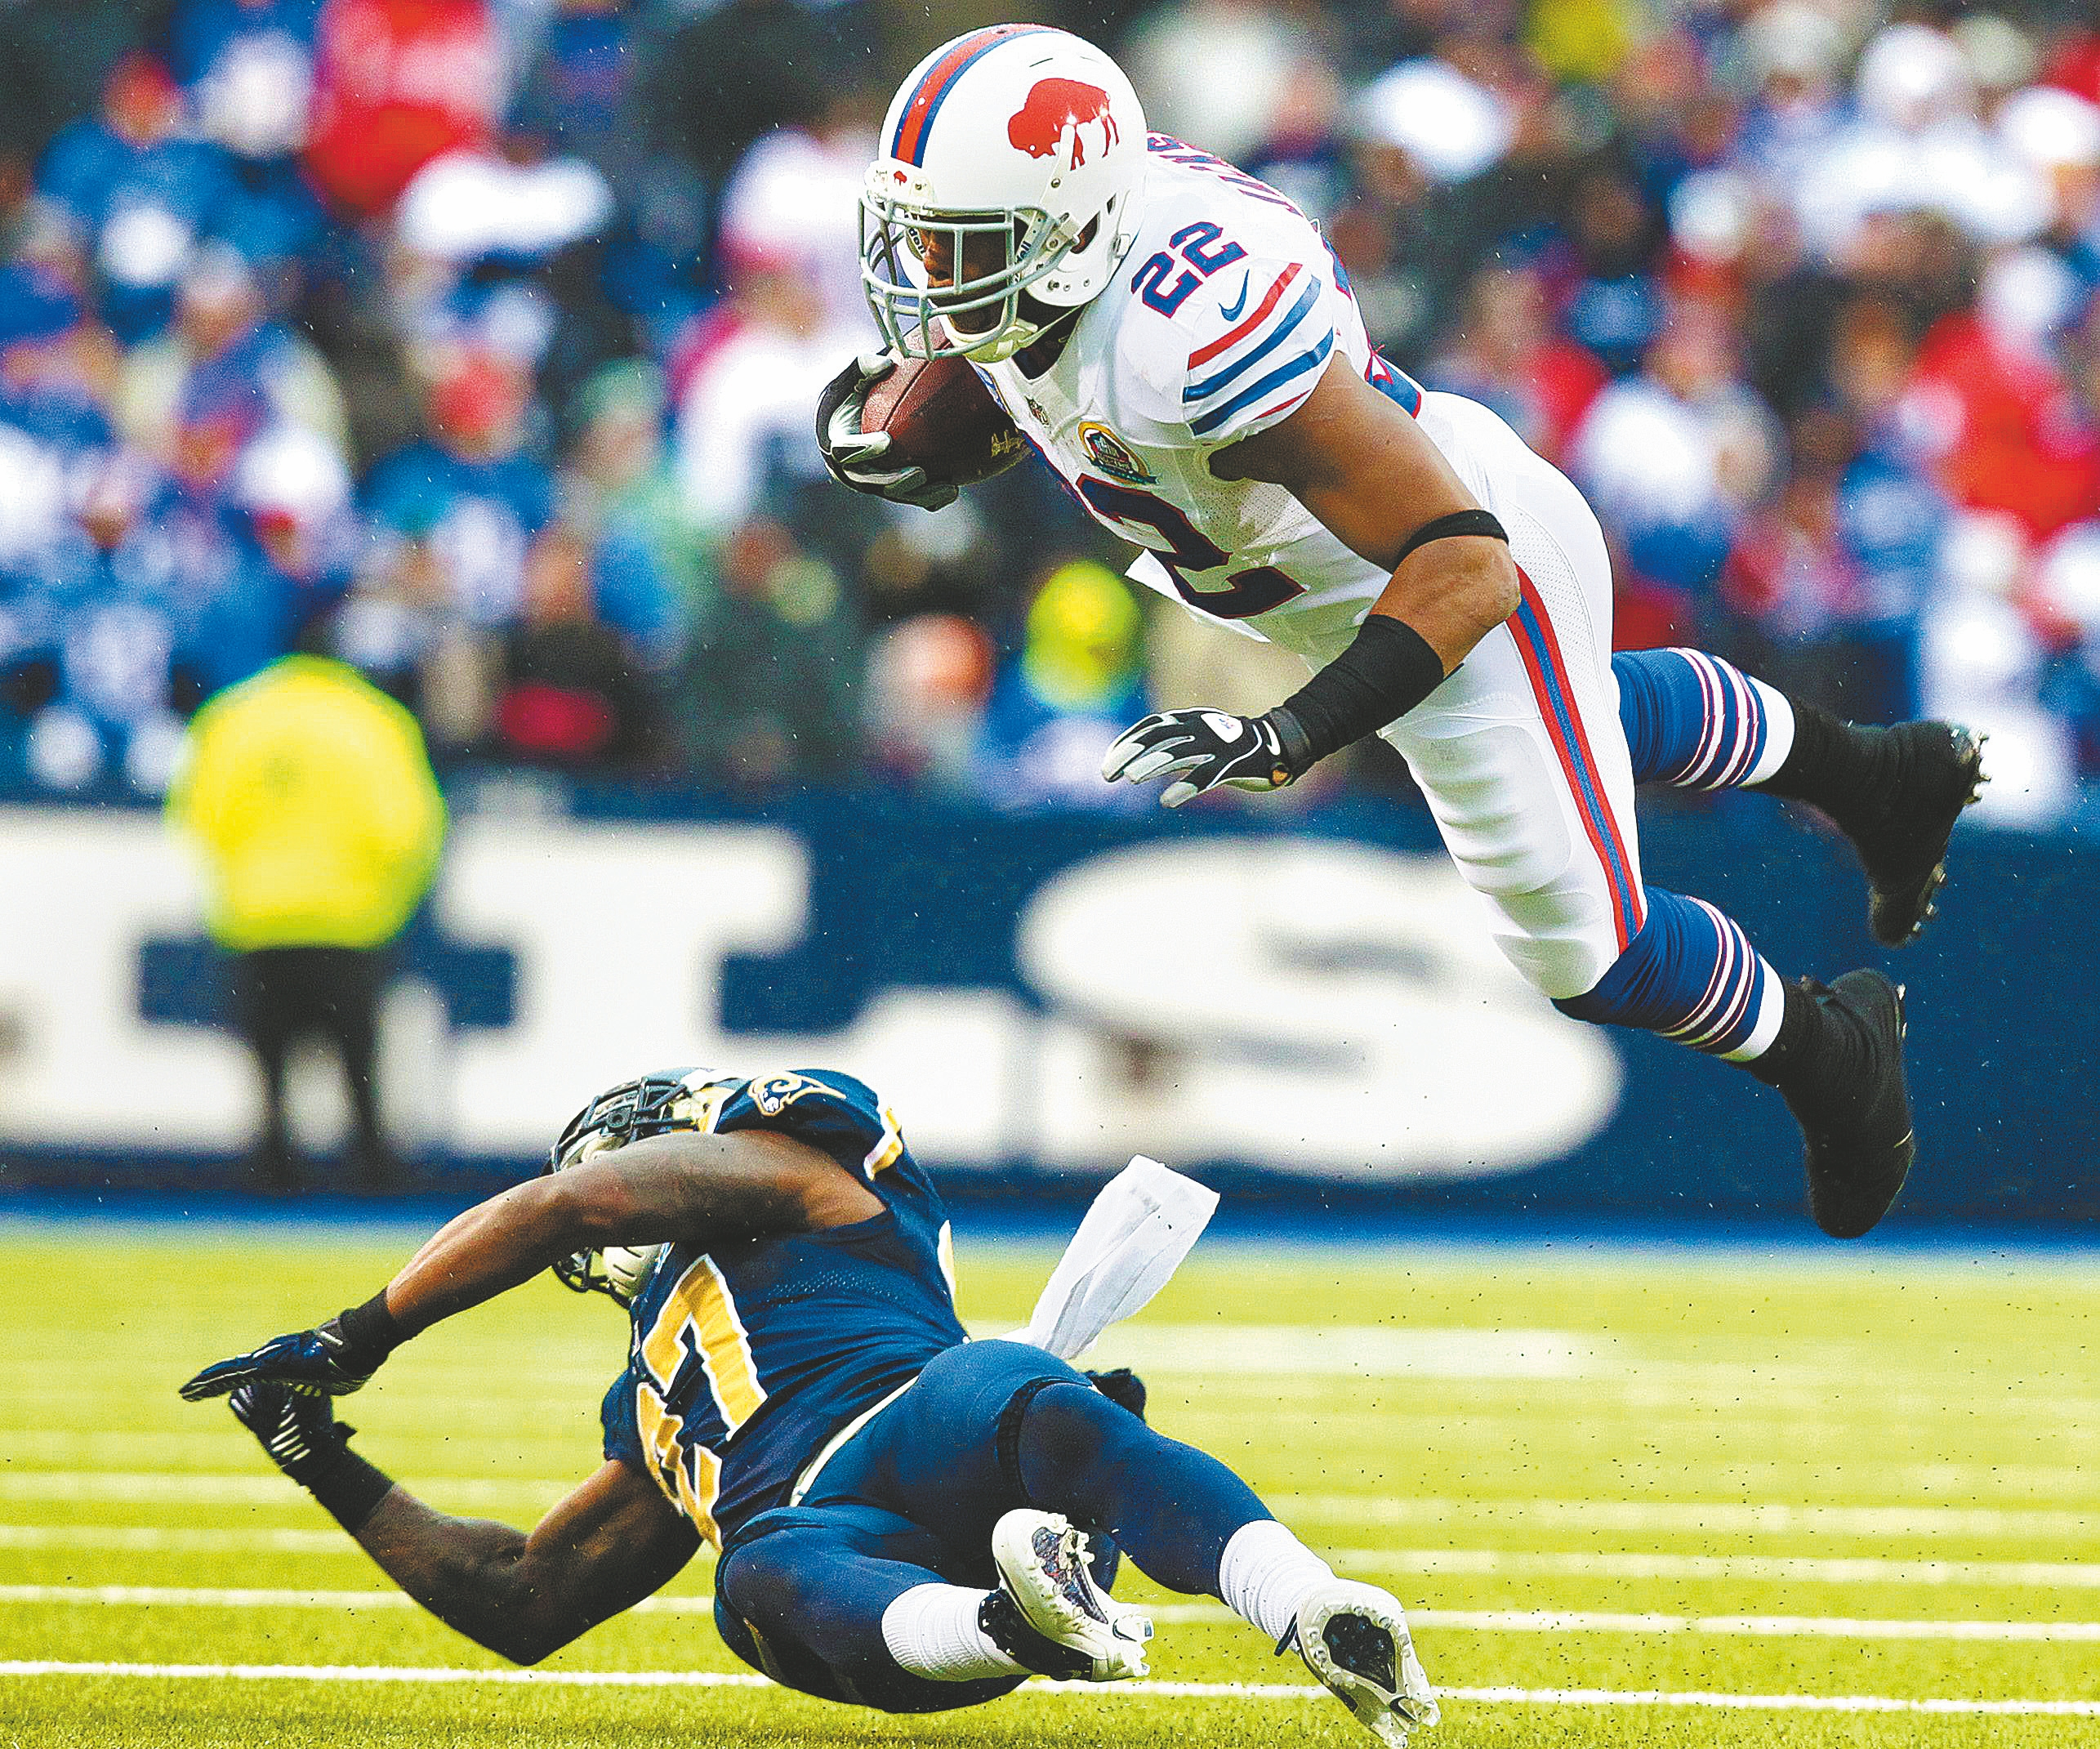 Buffalo Bills running back Fred Jackson (22) dives over St. Louis Rams free safety Quintin Mikell (27) in the third quarter at Ralph Wilson Stadium on Sunday, Dec. 9, 2012.  (James P. McCoy / Buffalo News)